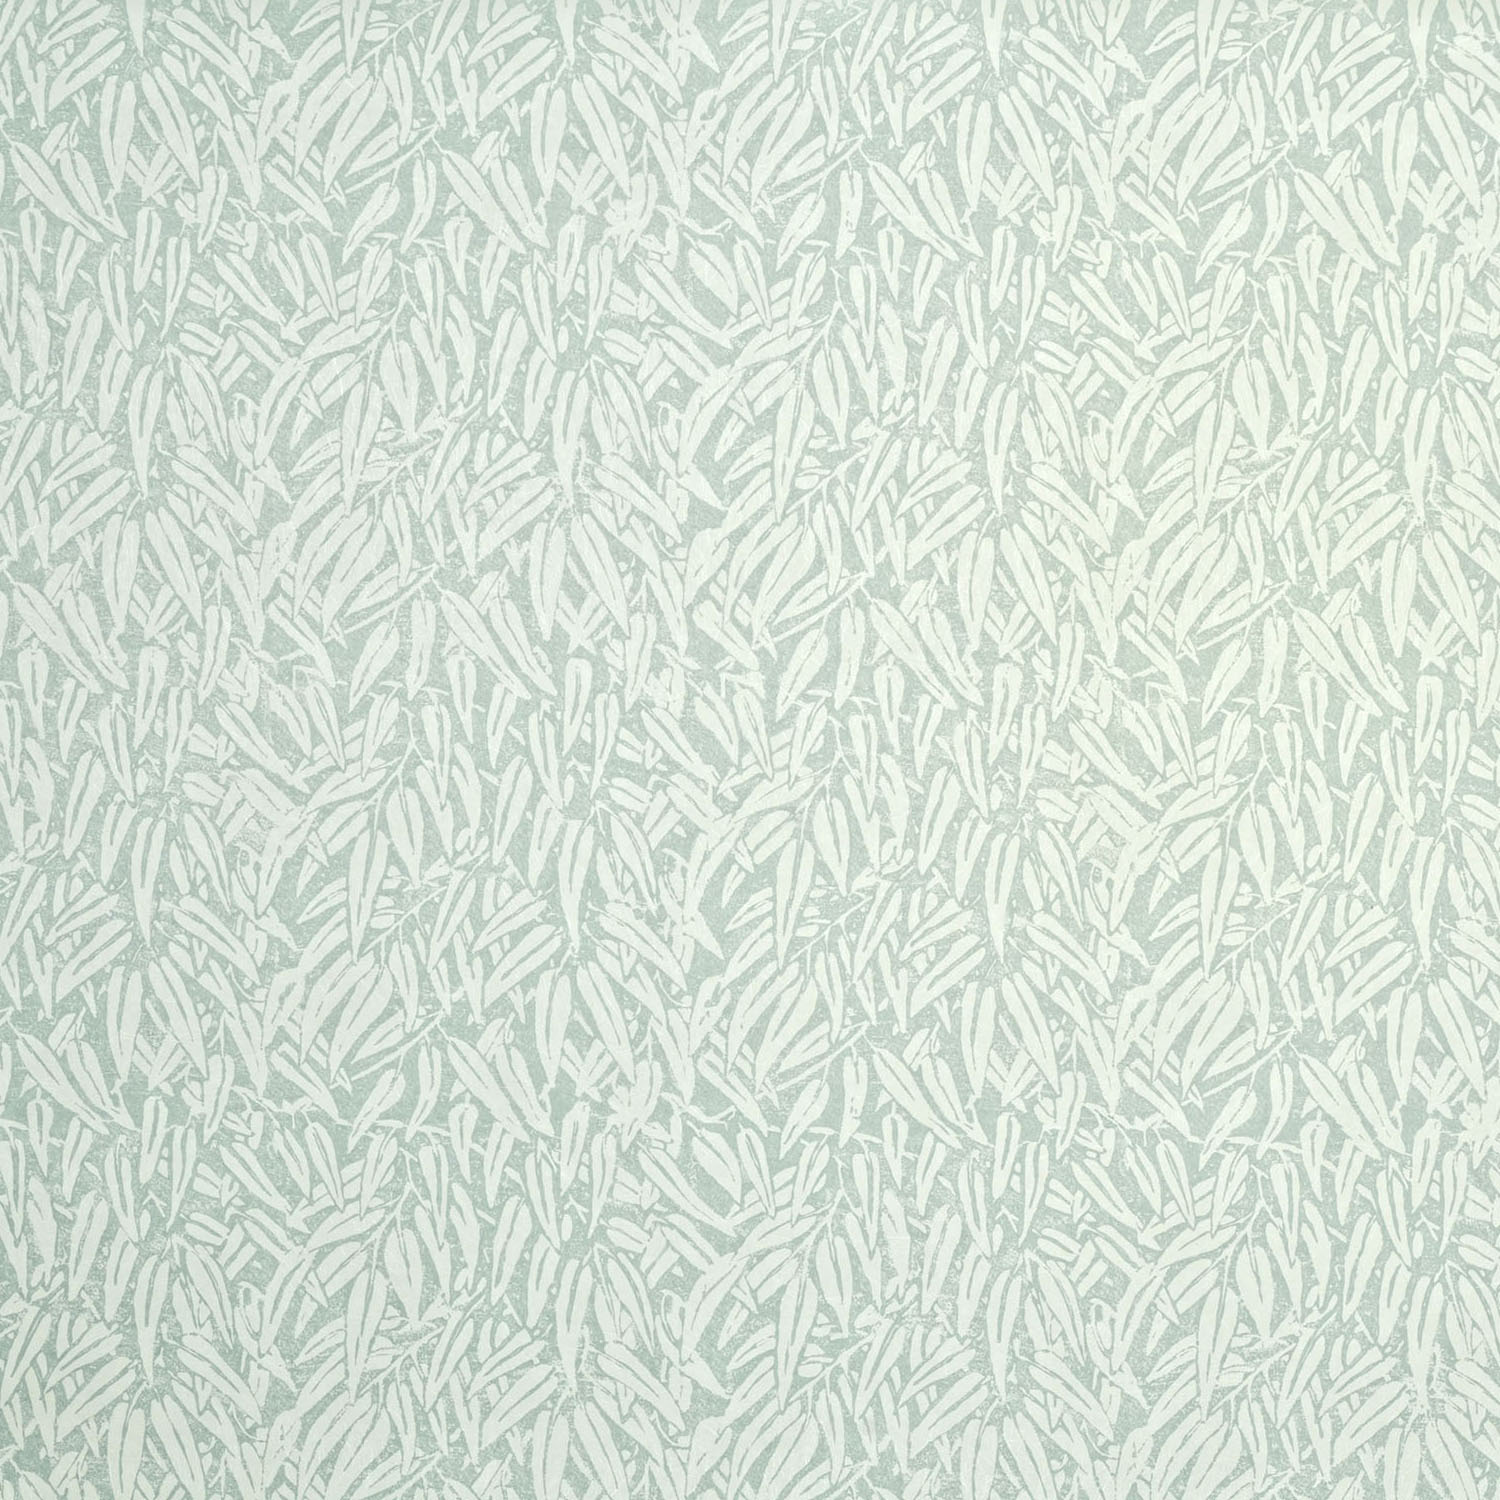 <p><strong>WILLOW</strong>aqua 860-01<a href=/the-peggy-angus-collection/willow-aqua-860-01>More →</a></p>